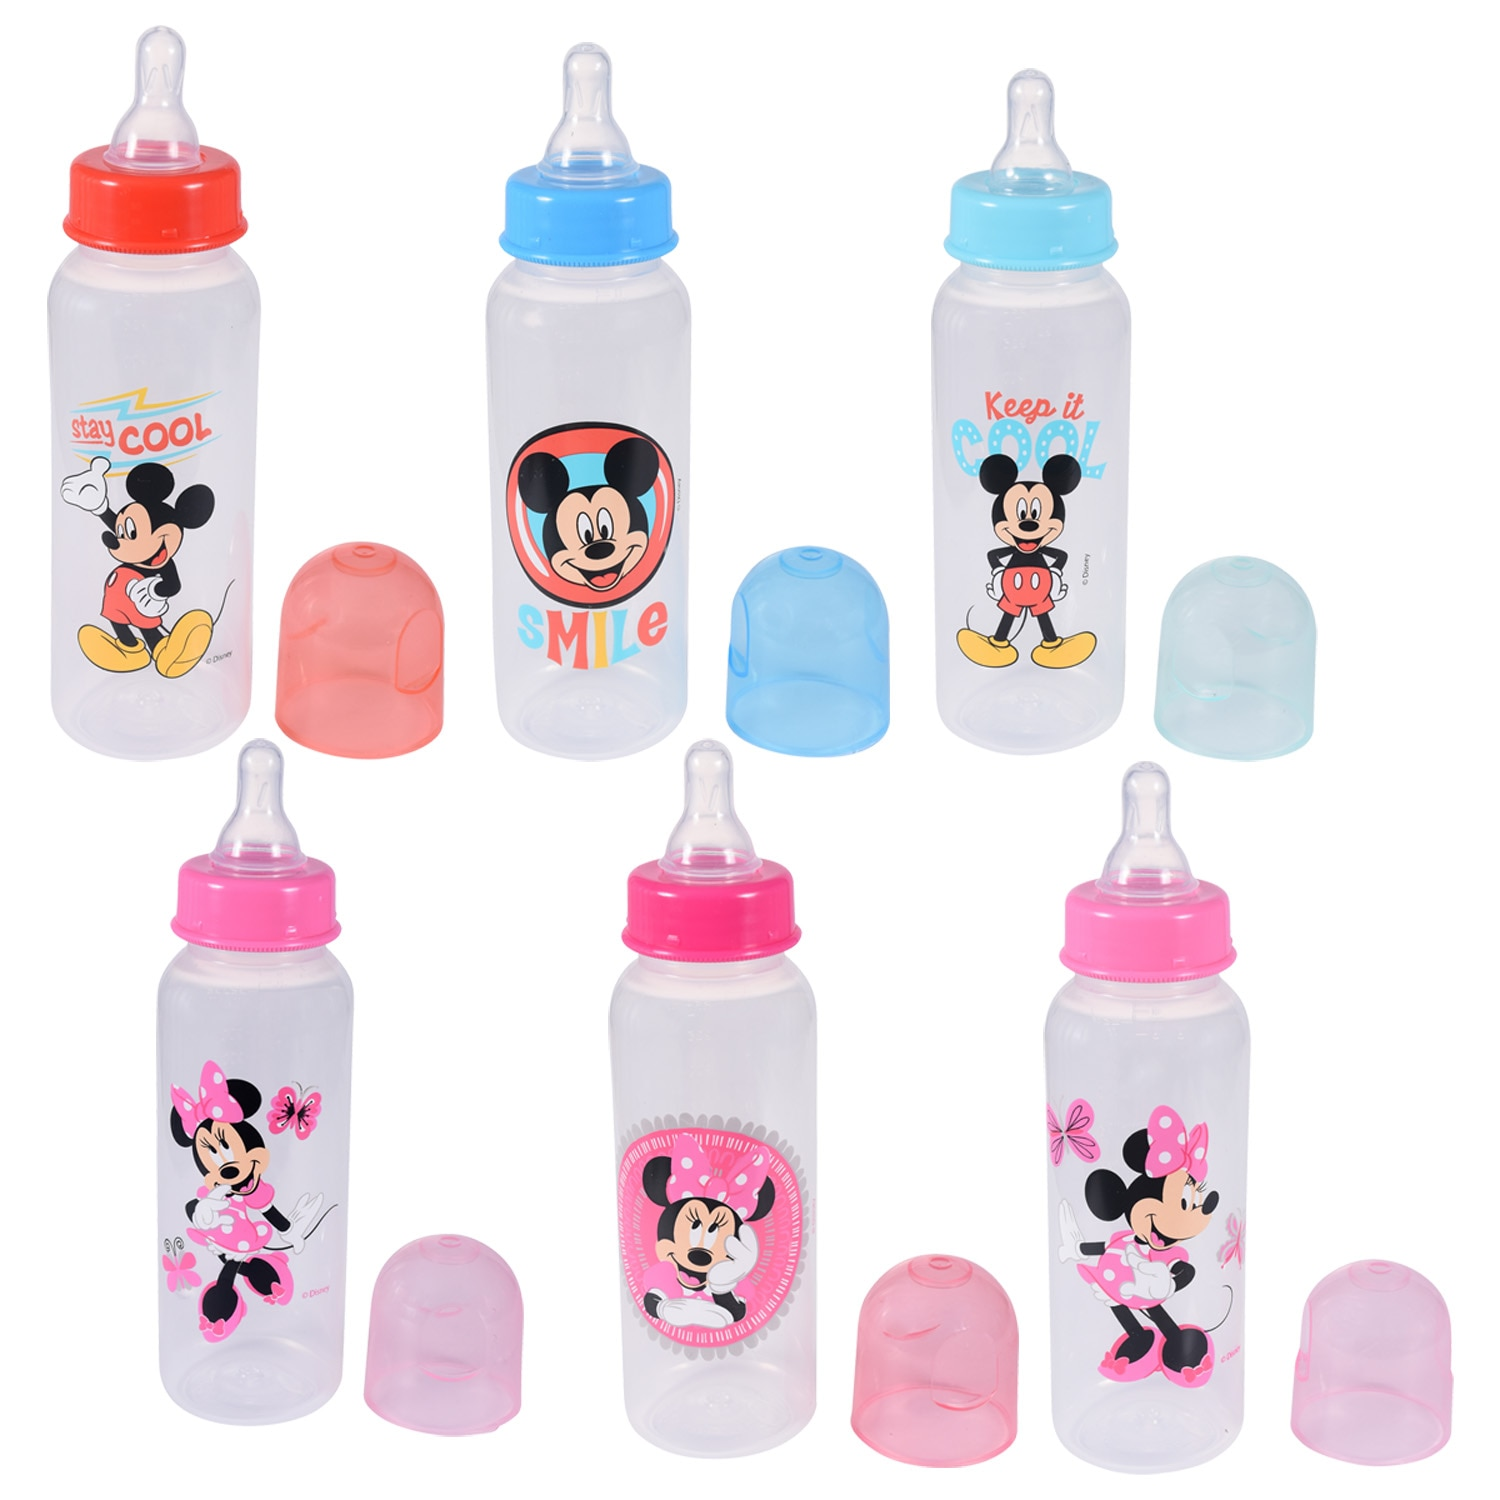 Baby King Solid Sippy Cup with Lid Baby Shower